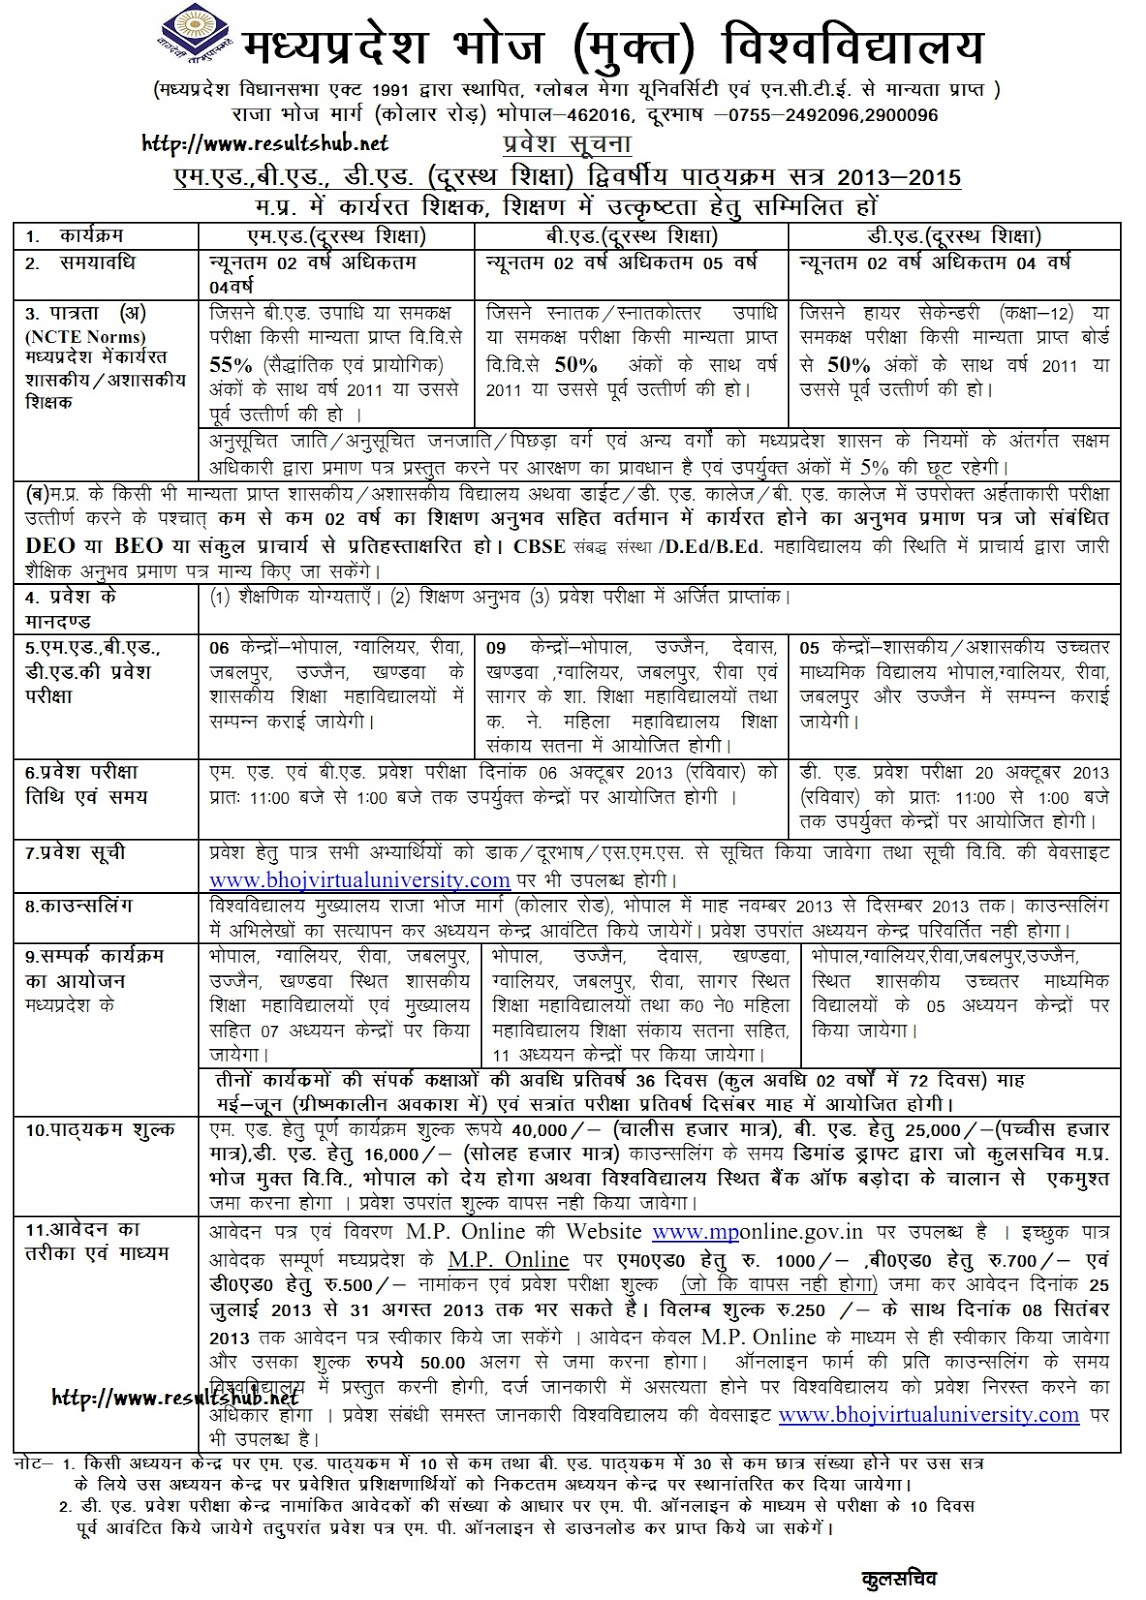 Bhoj University Entrance Examination Details 2013 | Entrance Exam 2013